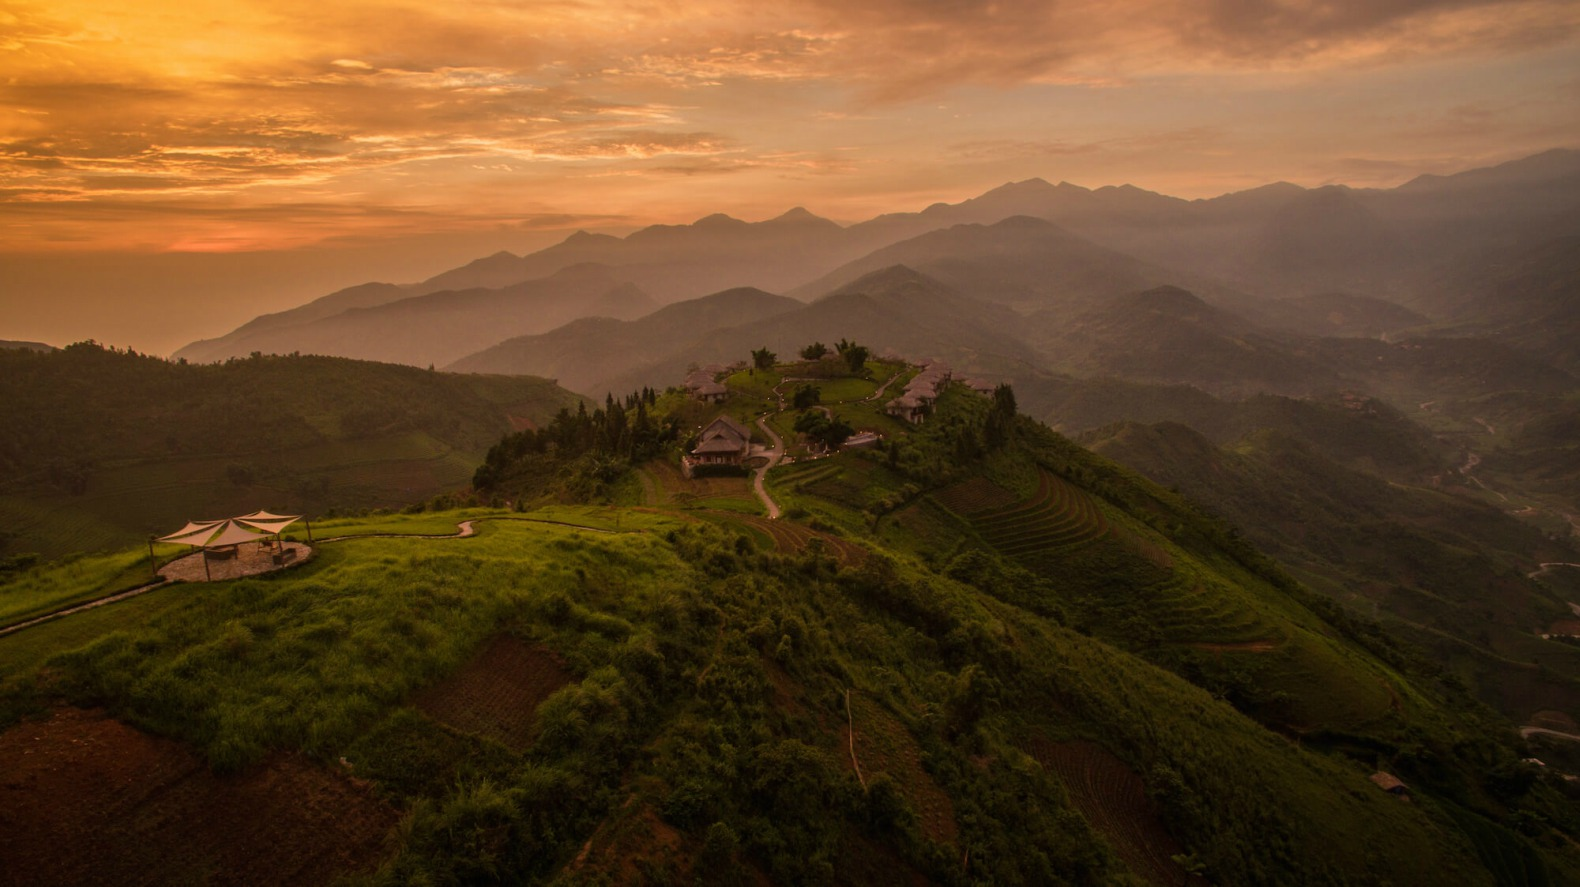 How To Use Remote Start >> Idyllic ecolodge tucked into remote Vietnamese mountainside is made of locally-sourced granite ...